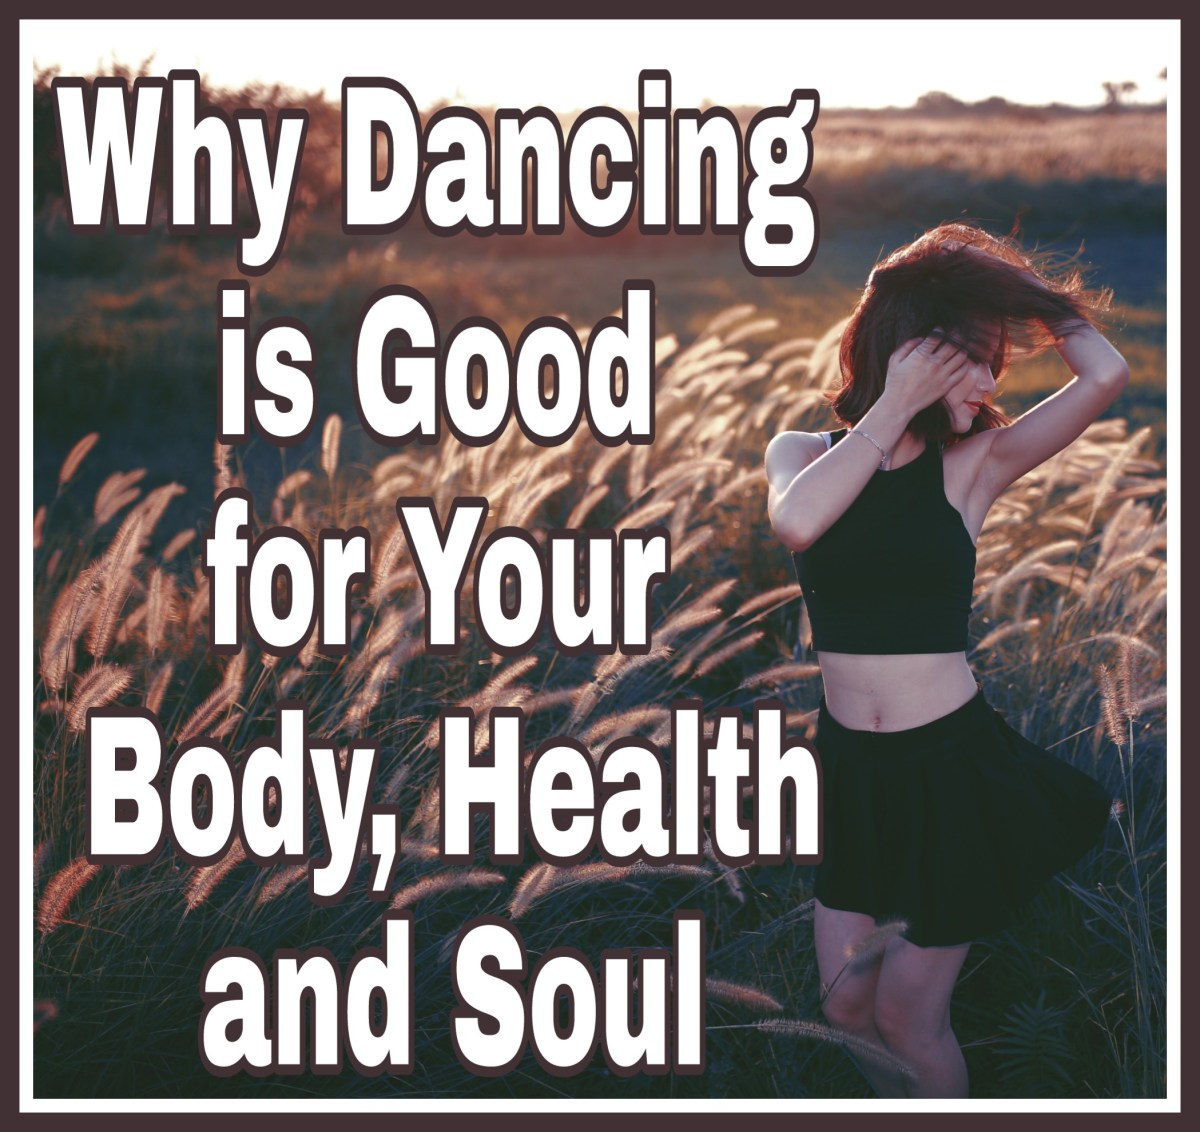 Why Dancing is Good for Your Body, Health, and Soul